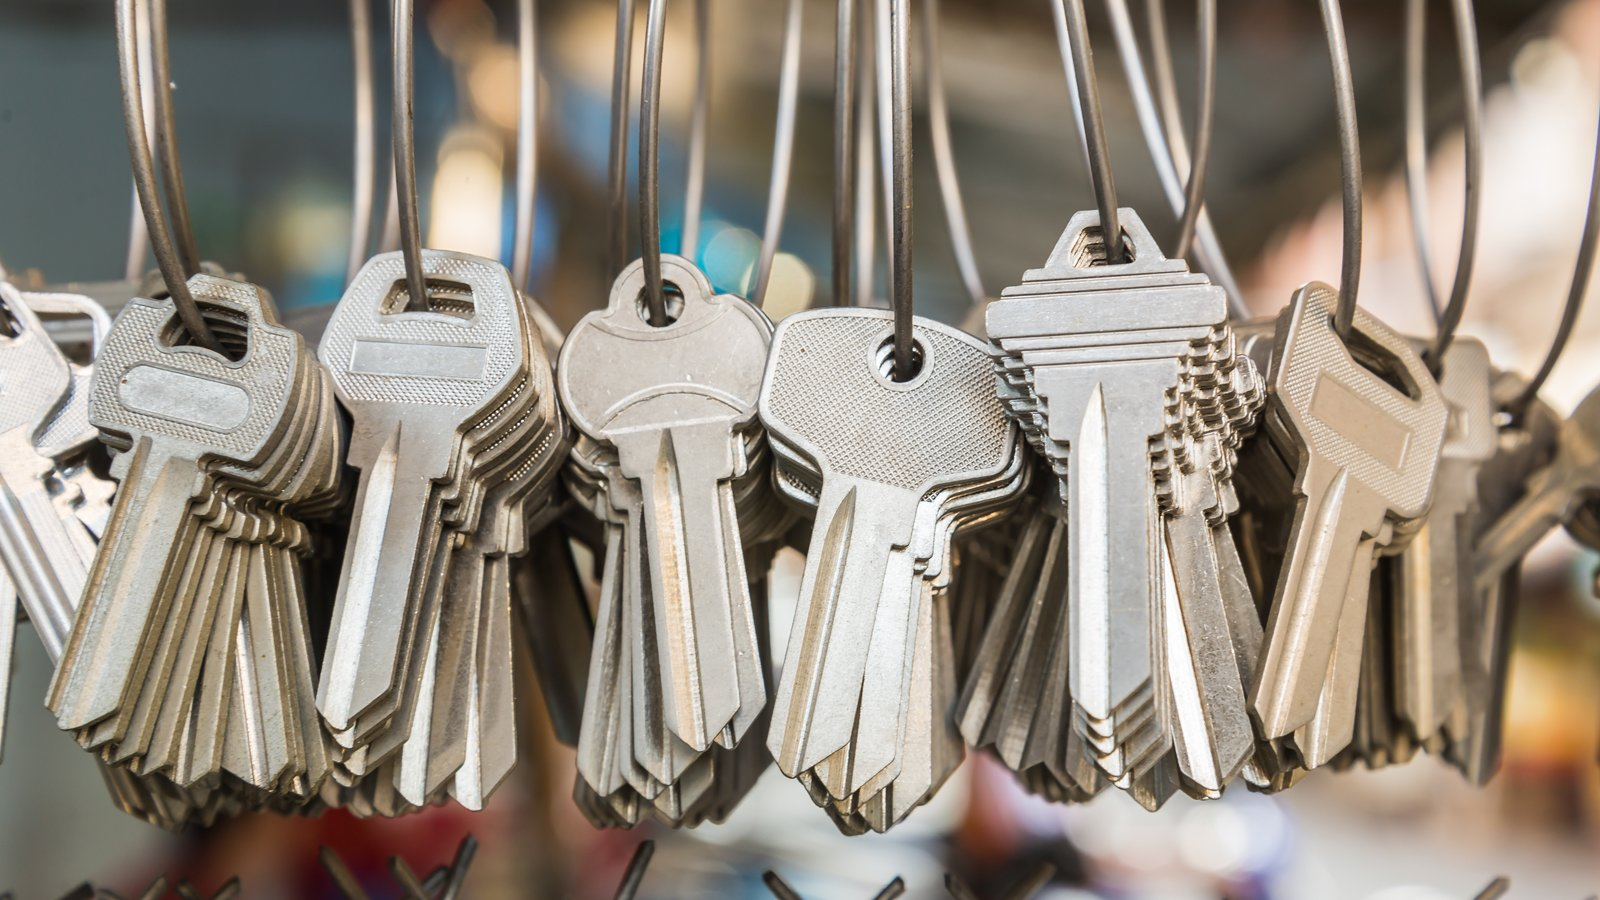 Prospect Locksmiths are here to help with Stolen Keys